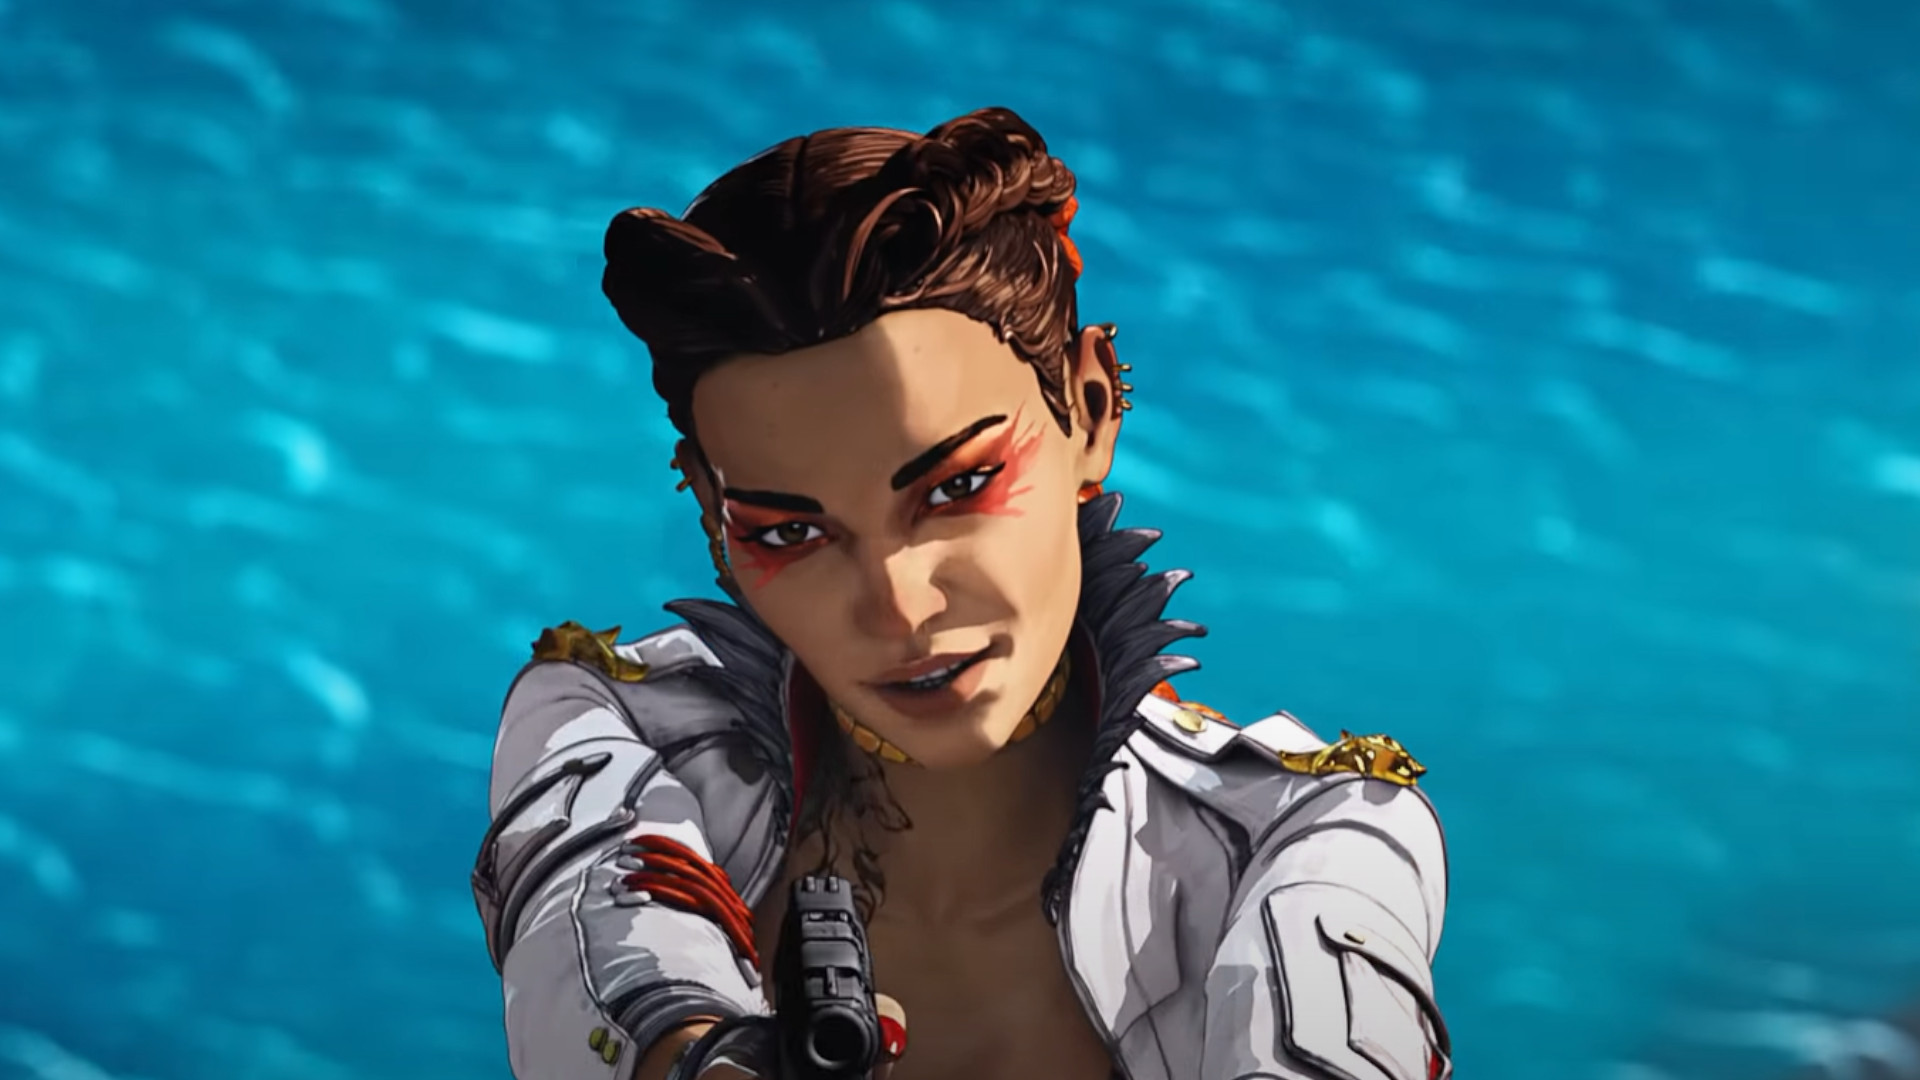 Loba in Apex Legends trailer aiming